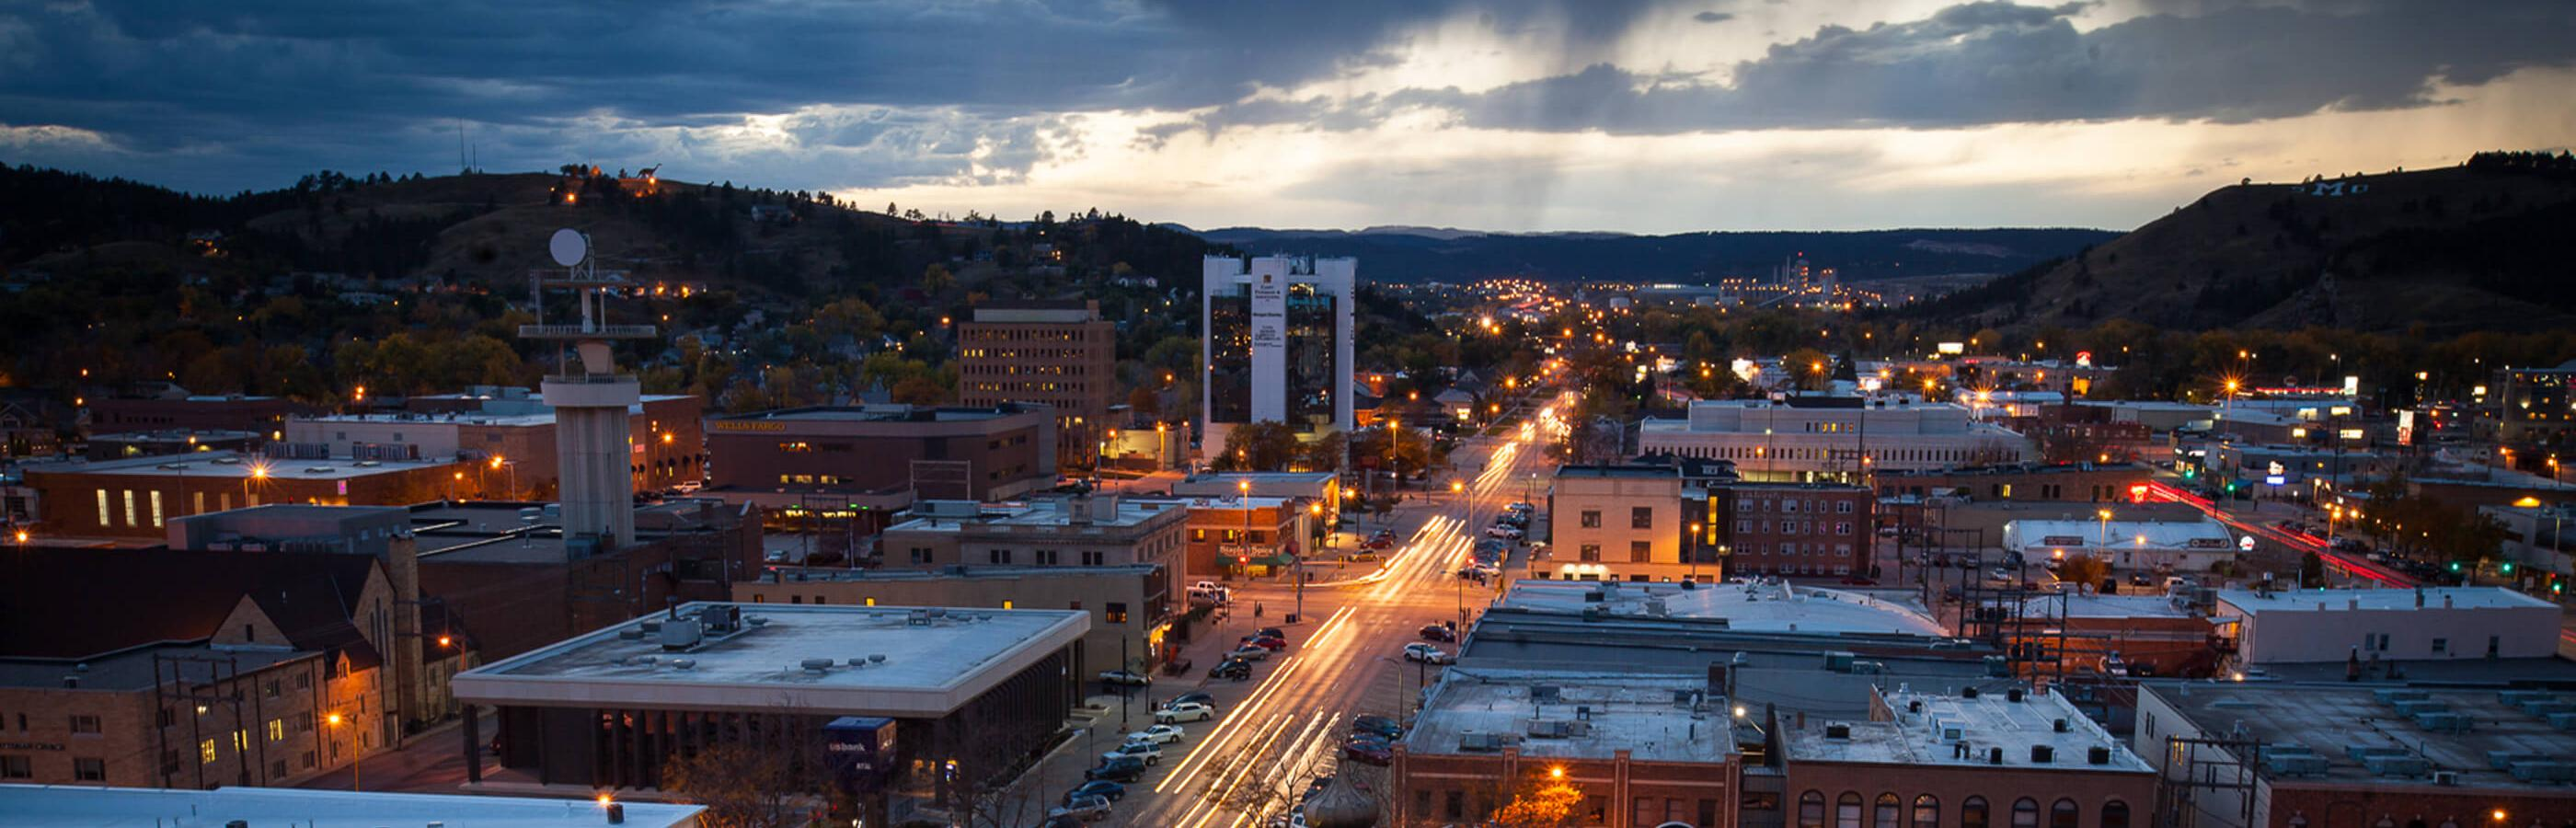 Downtown Rapid City South Dakota